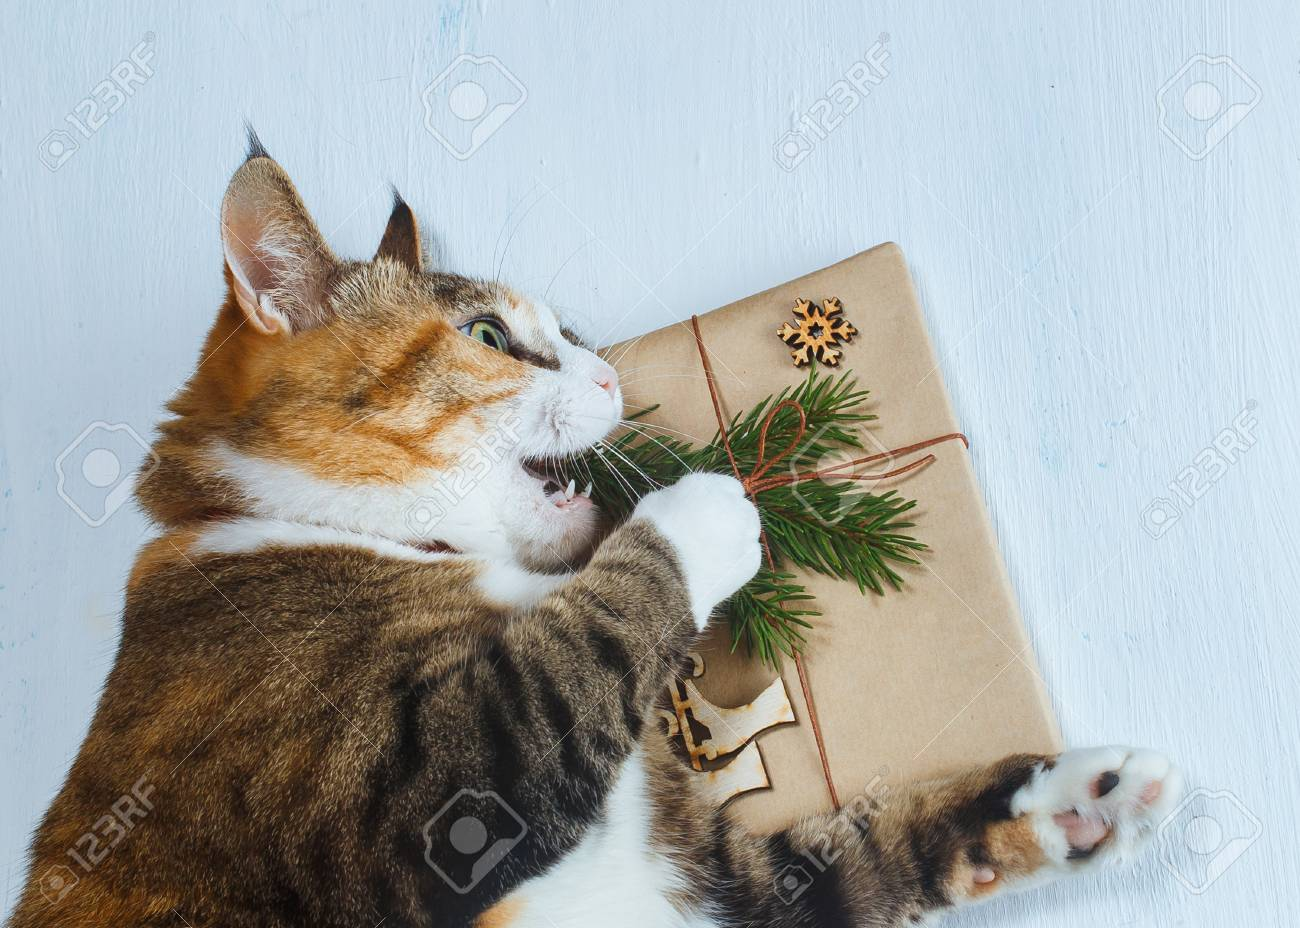 Stock Photo - The cat wants to open a Christmas gift.